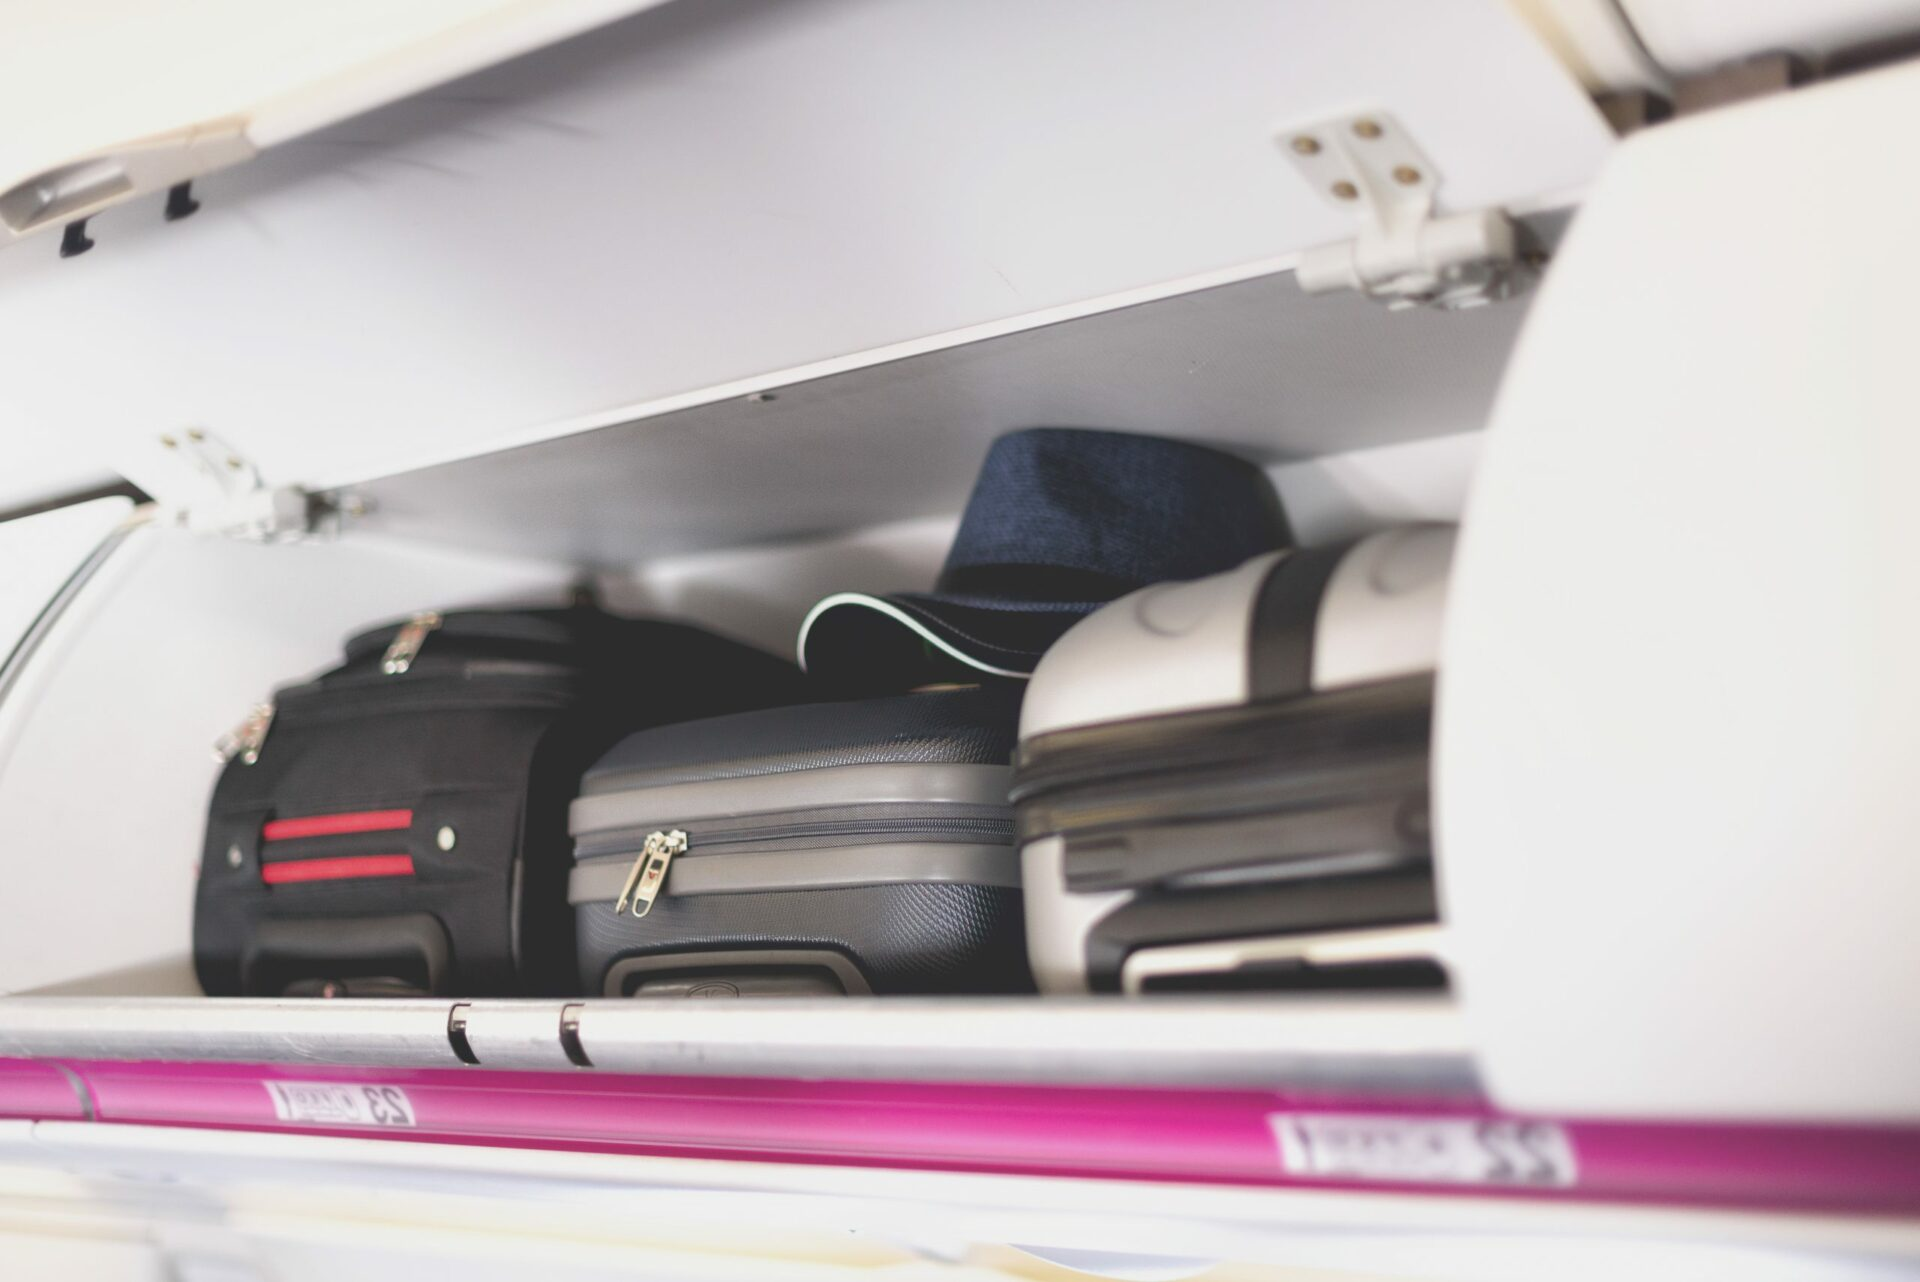 Hand-luggage compartment with suitcases in airplane. Carry-on luggage on top shelf of plane. Travel concept with copy space